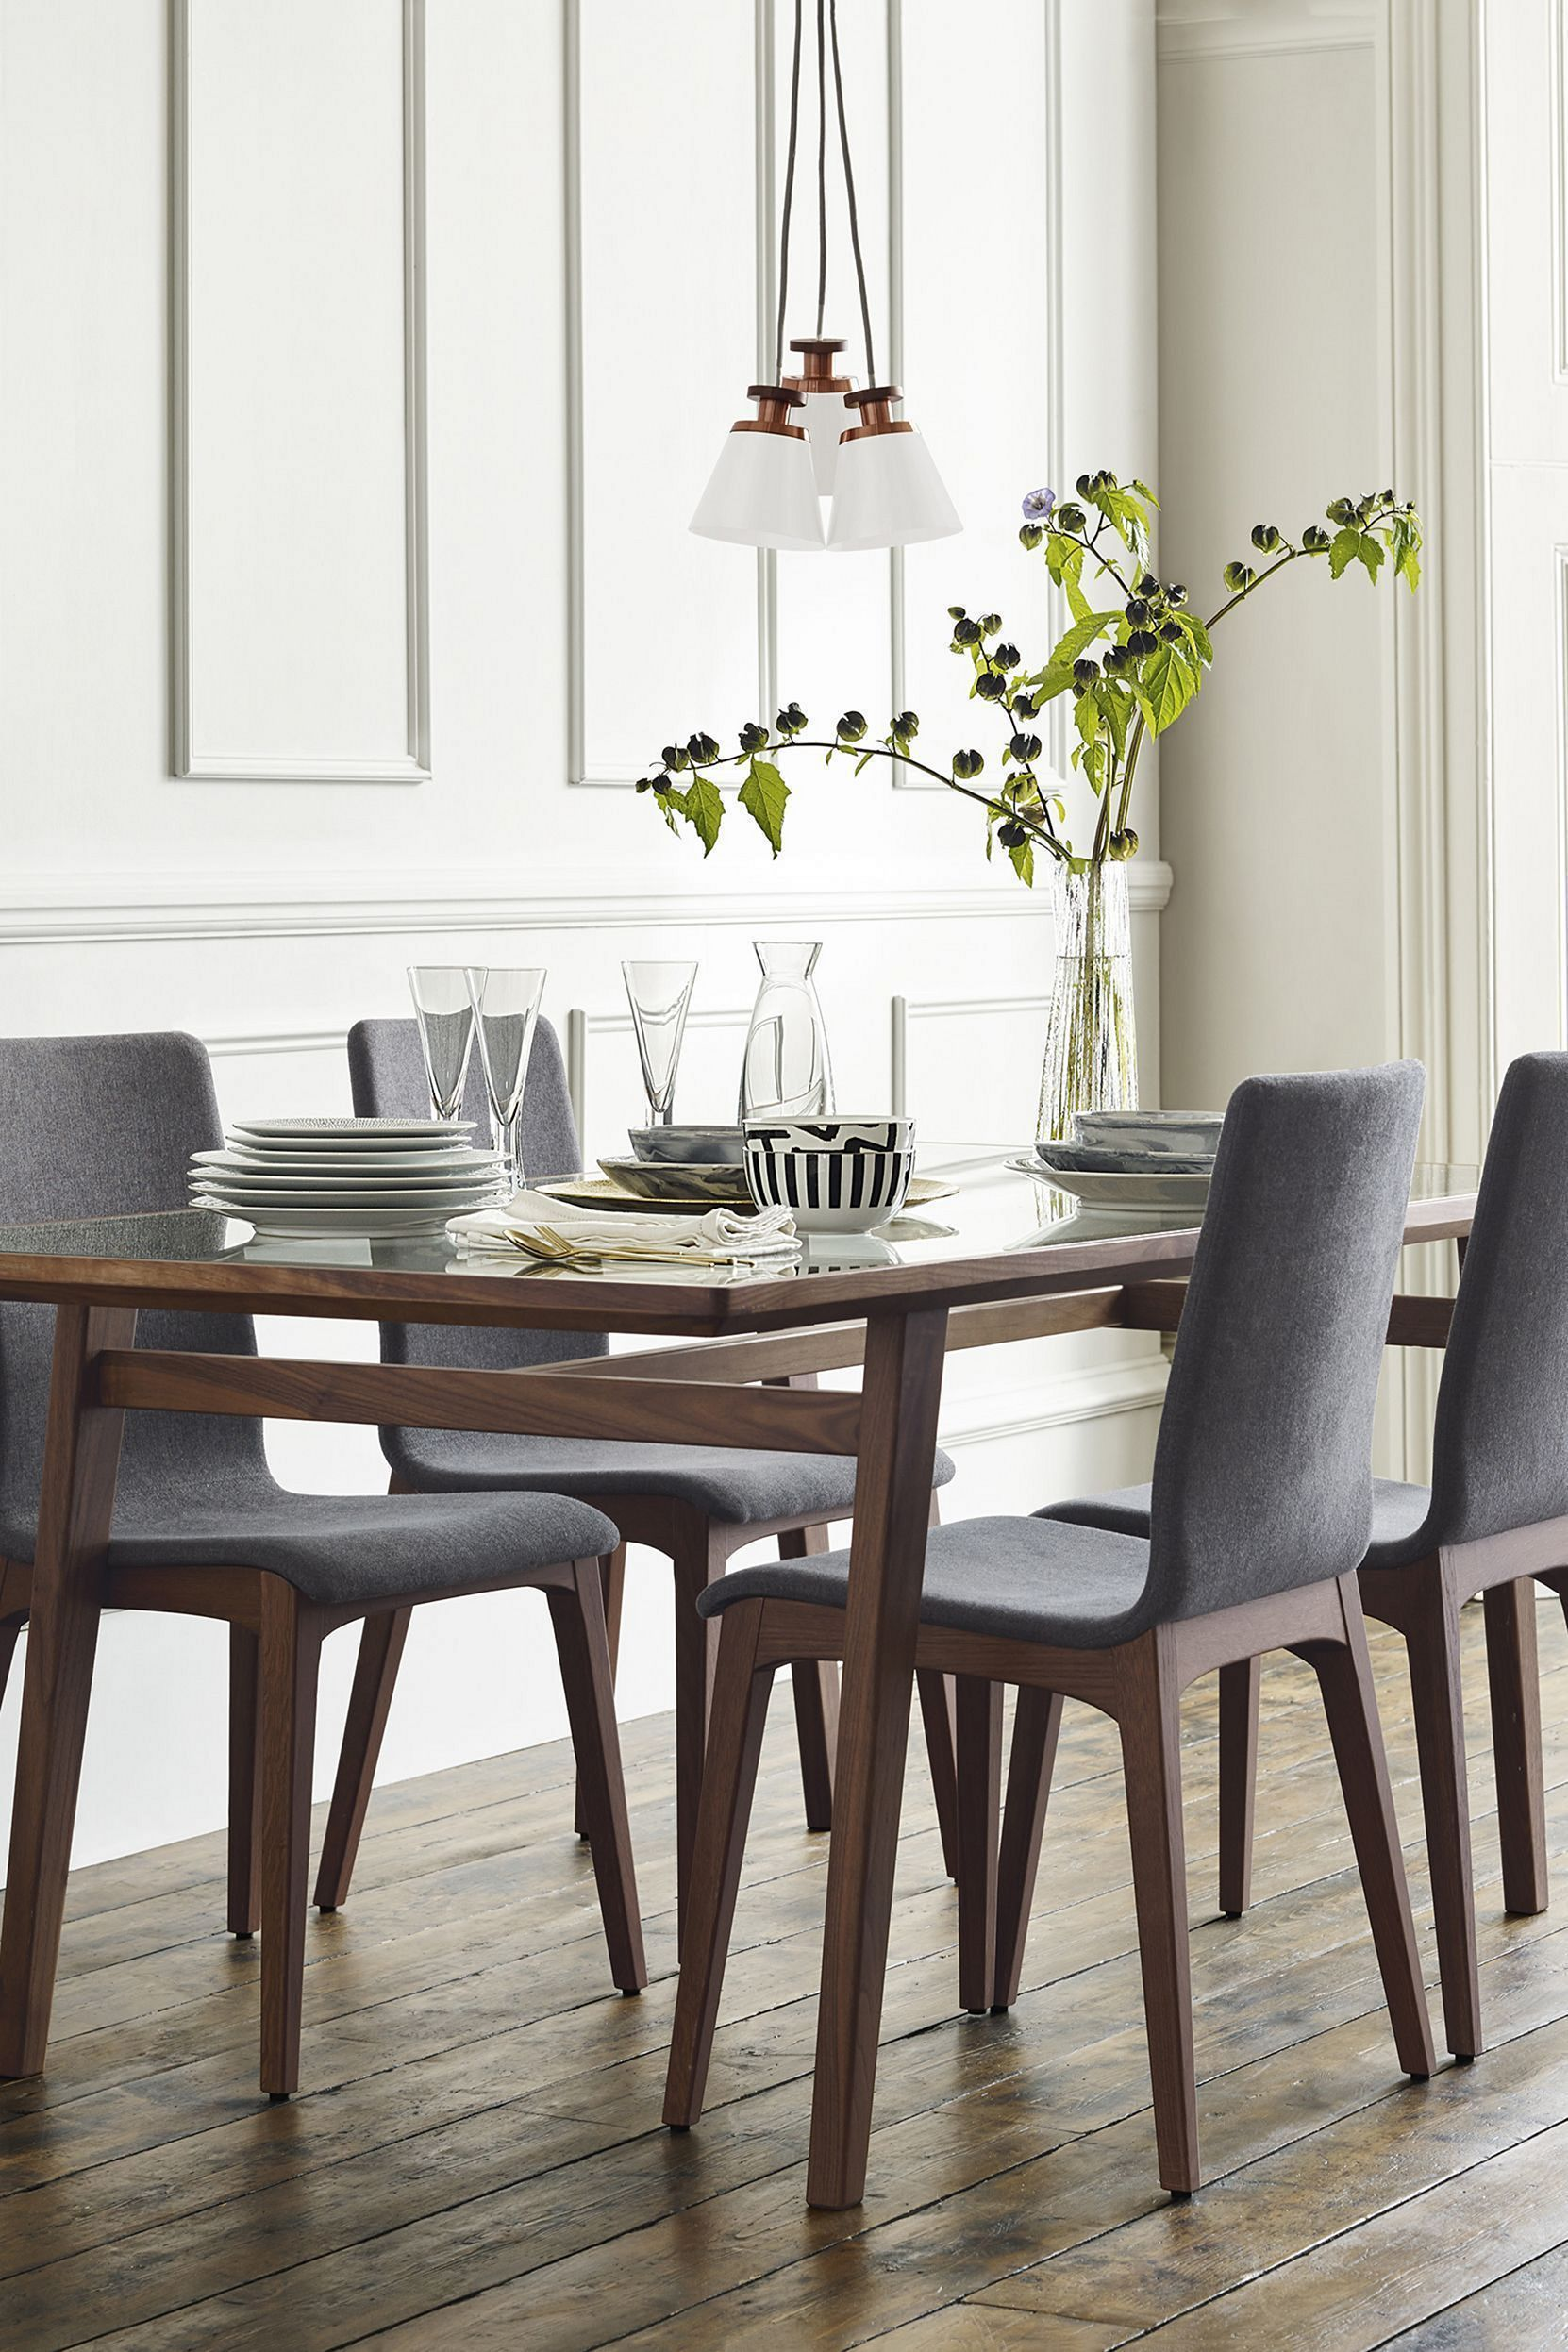 5 Awesome Dining Room Design With Bright Color Dining Table Ideas Freshouz Com Dining Room Design Contemporary Dining Room Tables Modern Dining Room